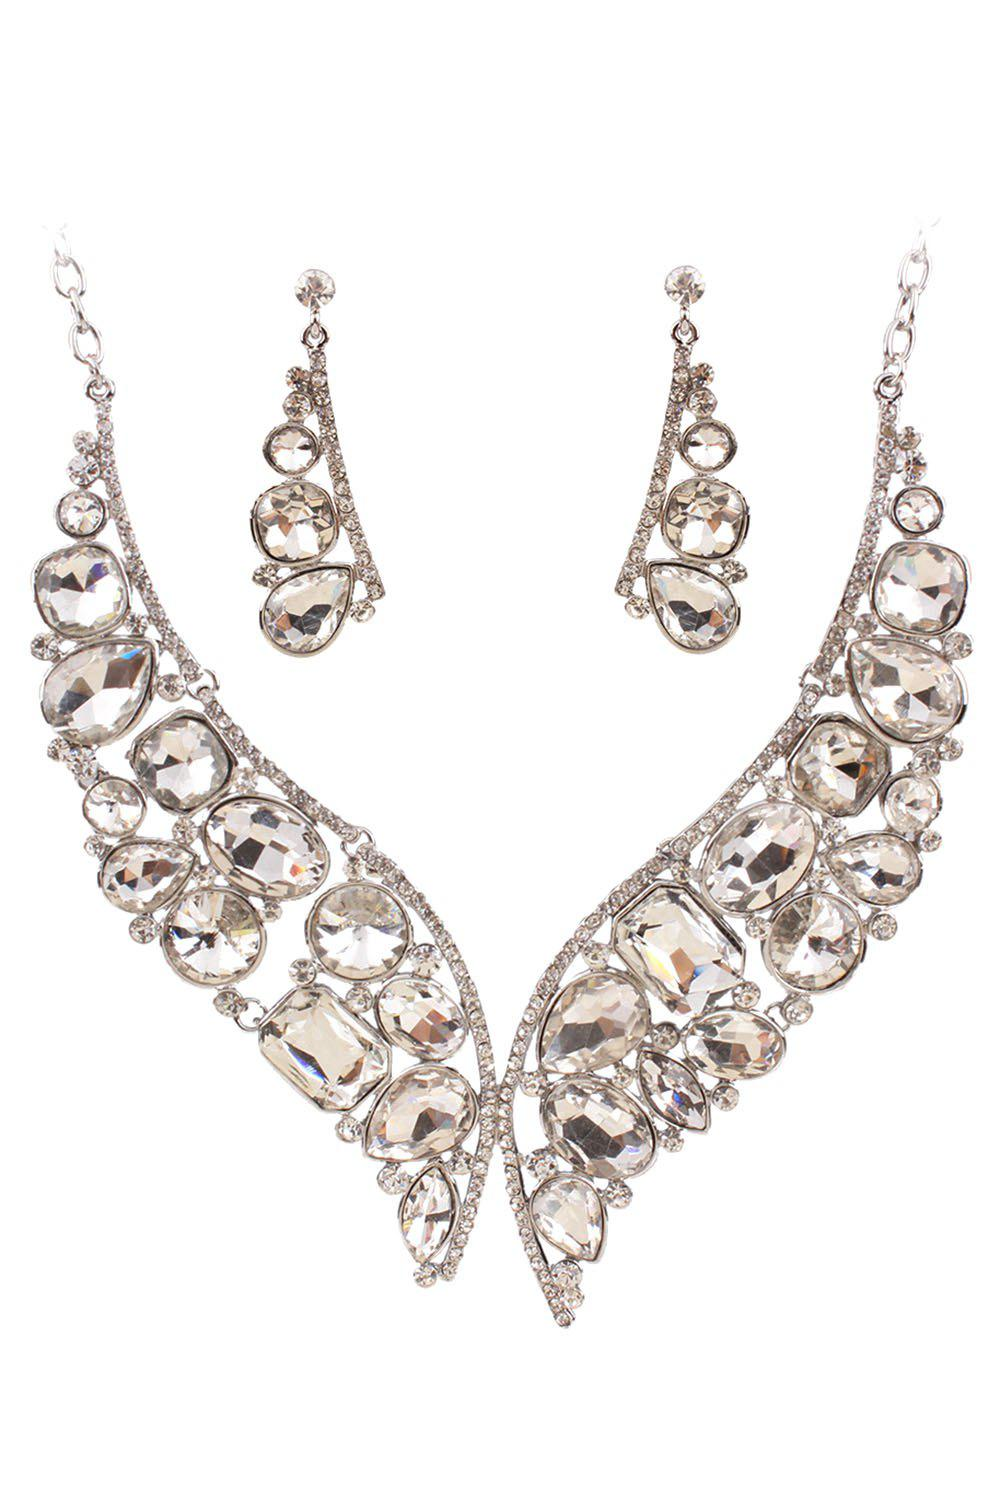 A Suit of Noble Faux Crystal Fake Collar Necklace and Earrings For Women - WHITE